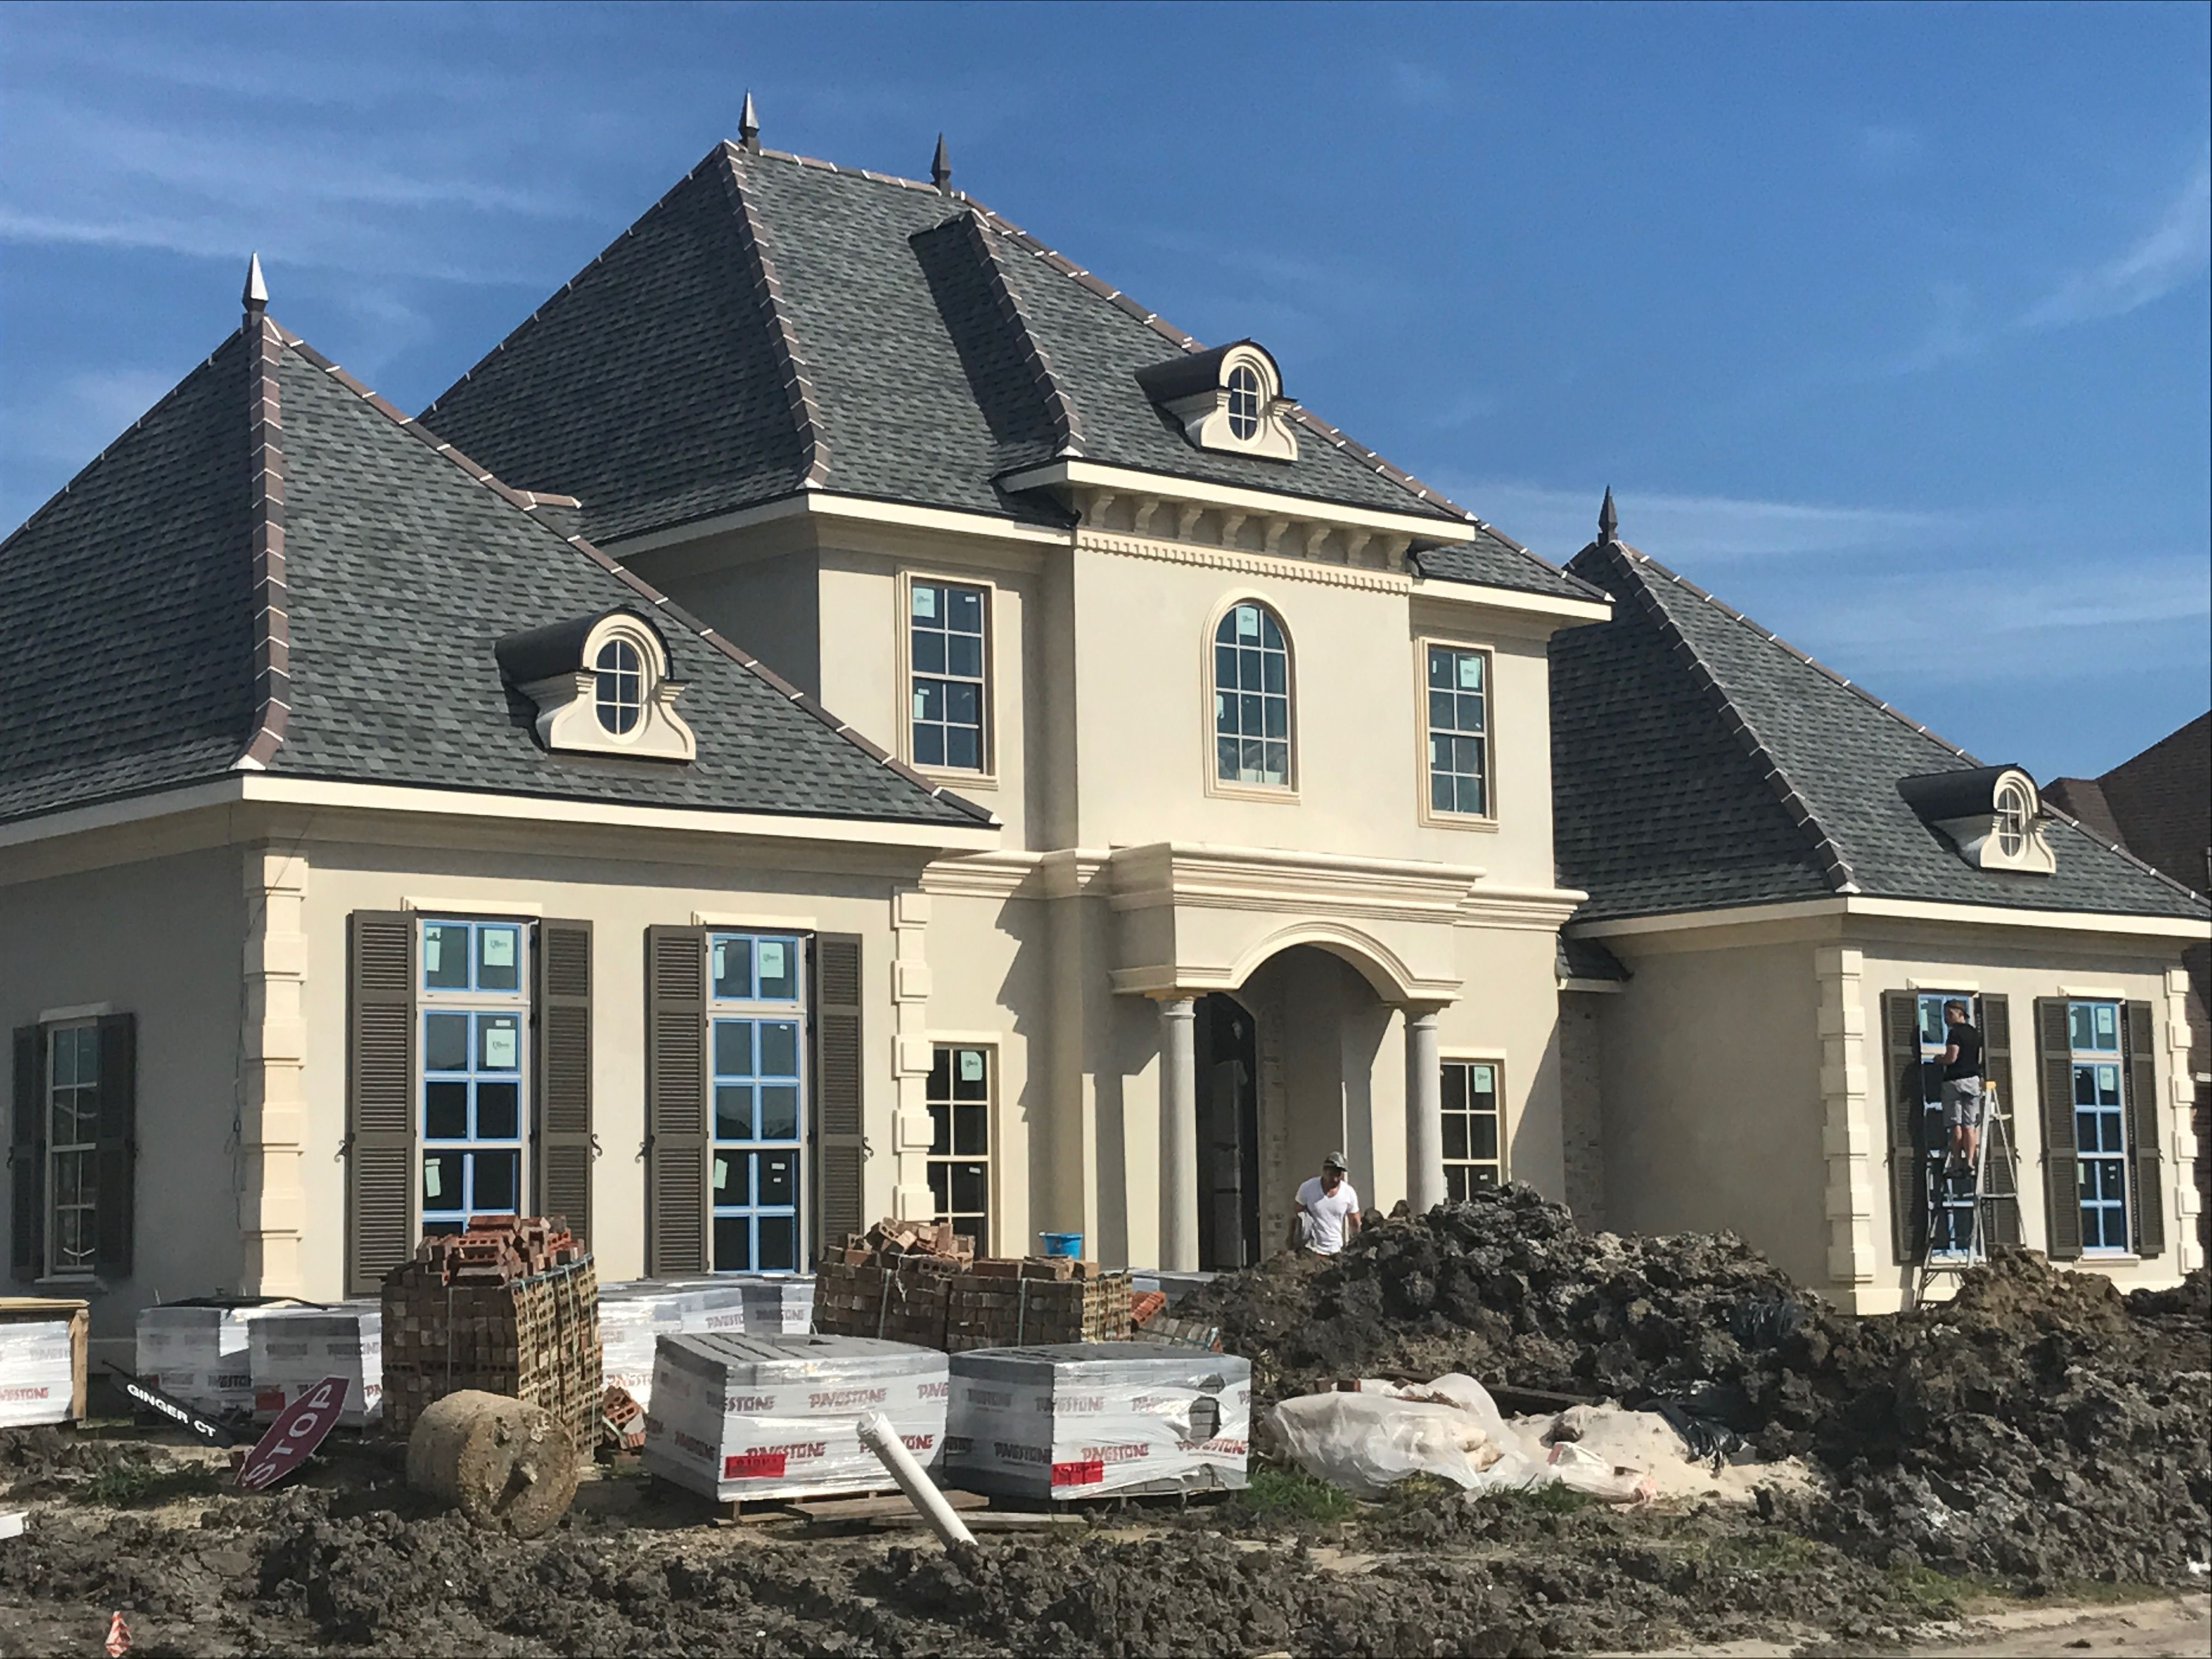 Quality roofing job begins before the shingles go on home remodeling - Roof Pinnacle Atlas Hearthstone Grey Shingles Ridge Tiles 2 Dark Brown 1 Black With